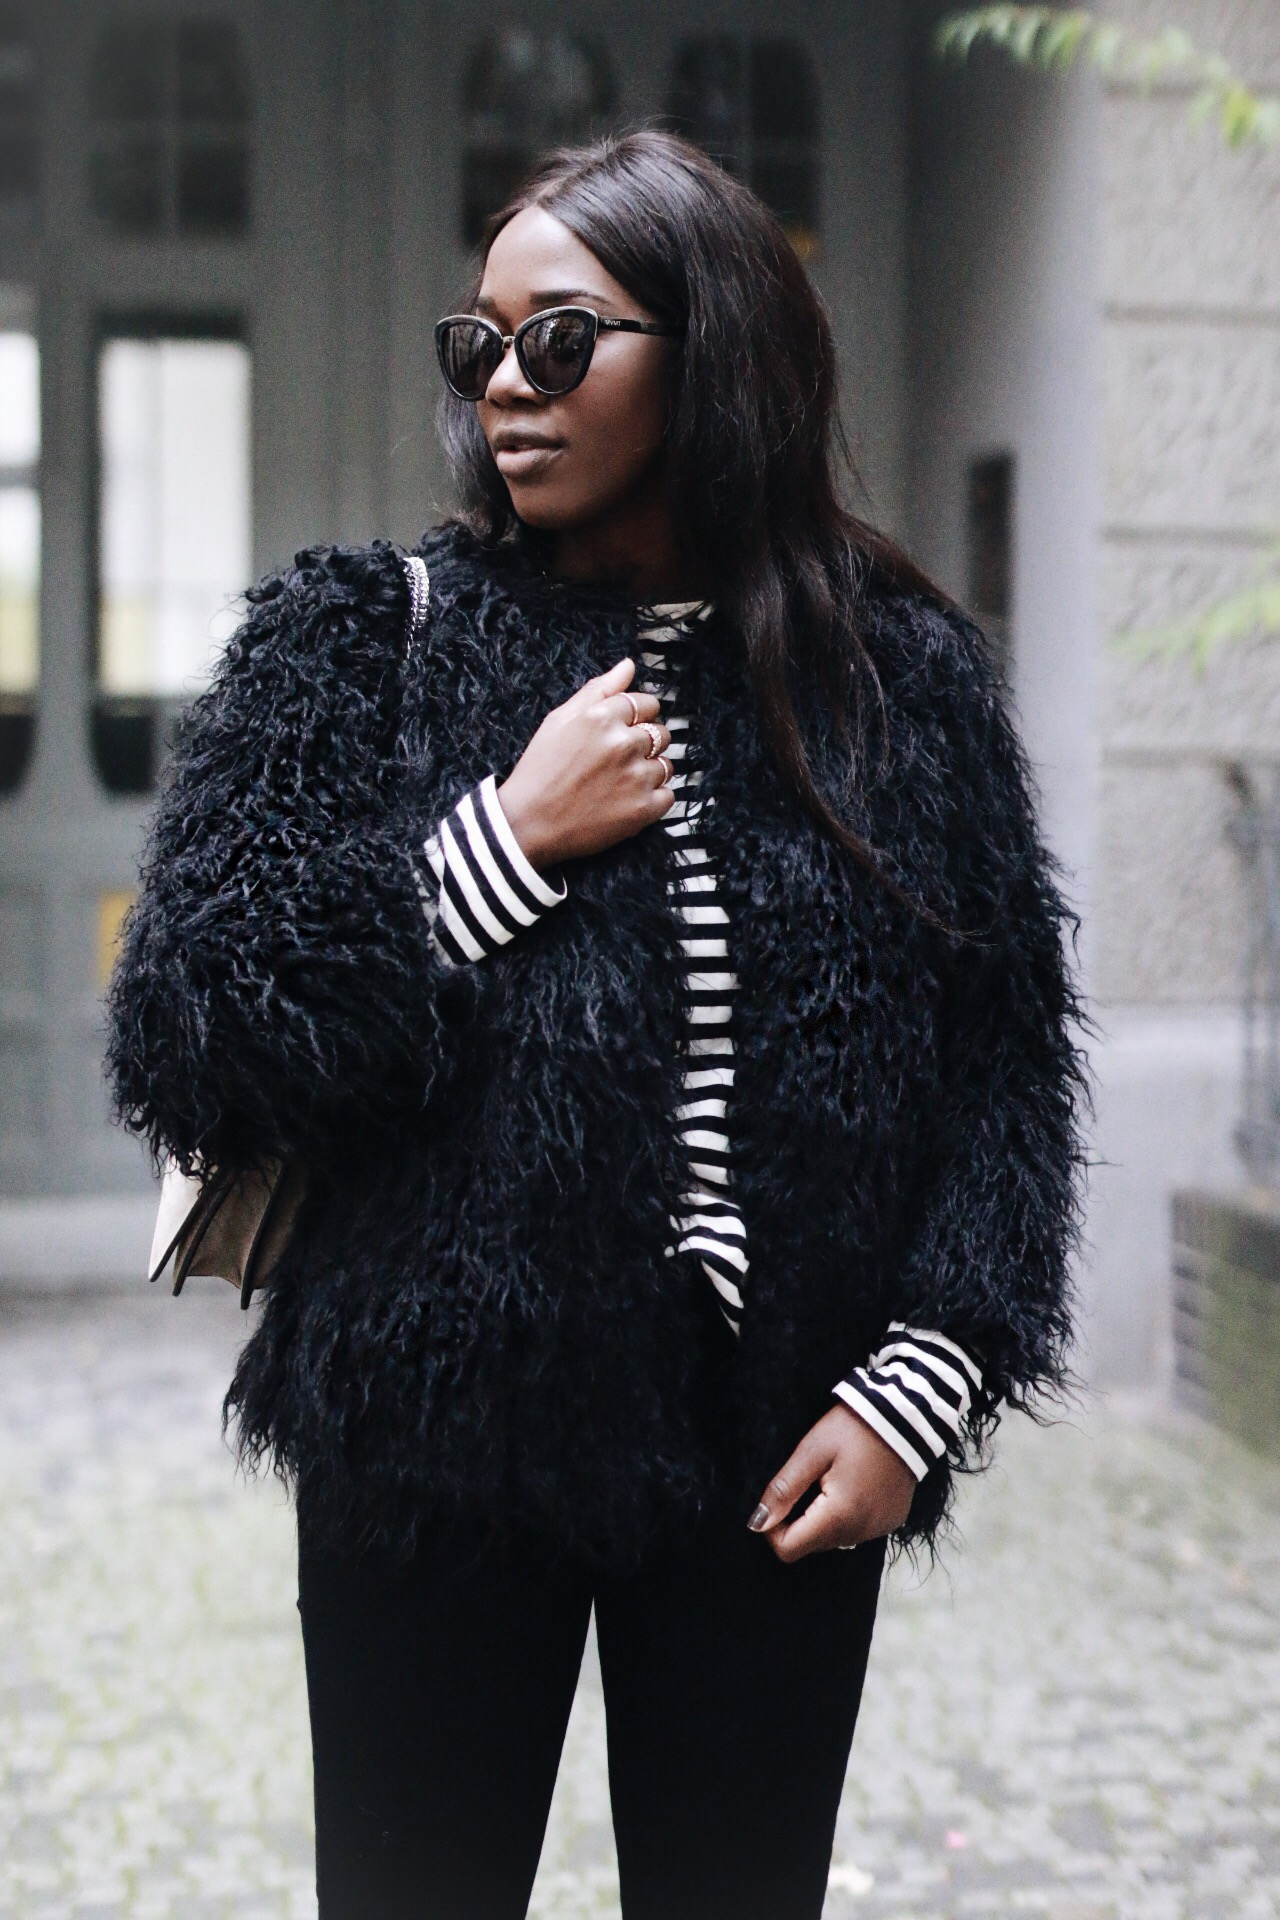 Outfit: Fluffy Black Coat